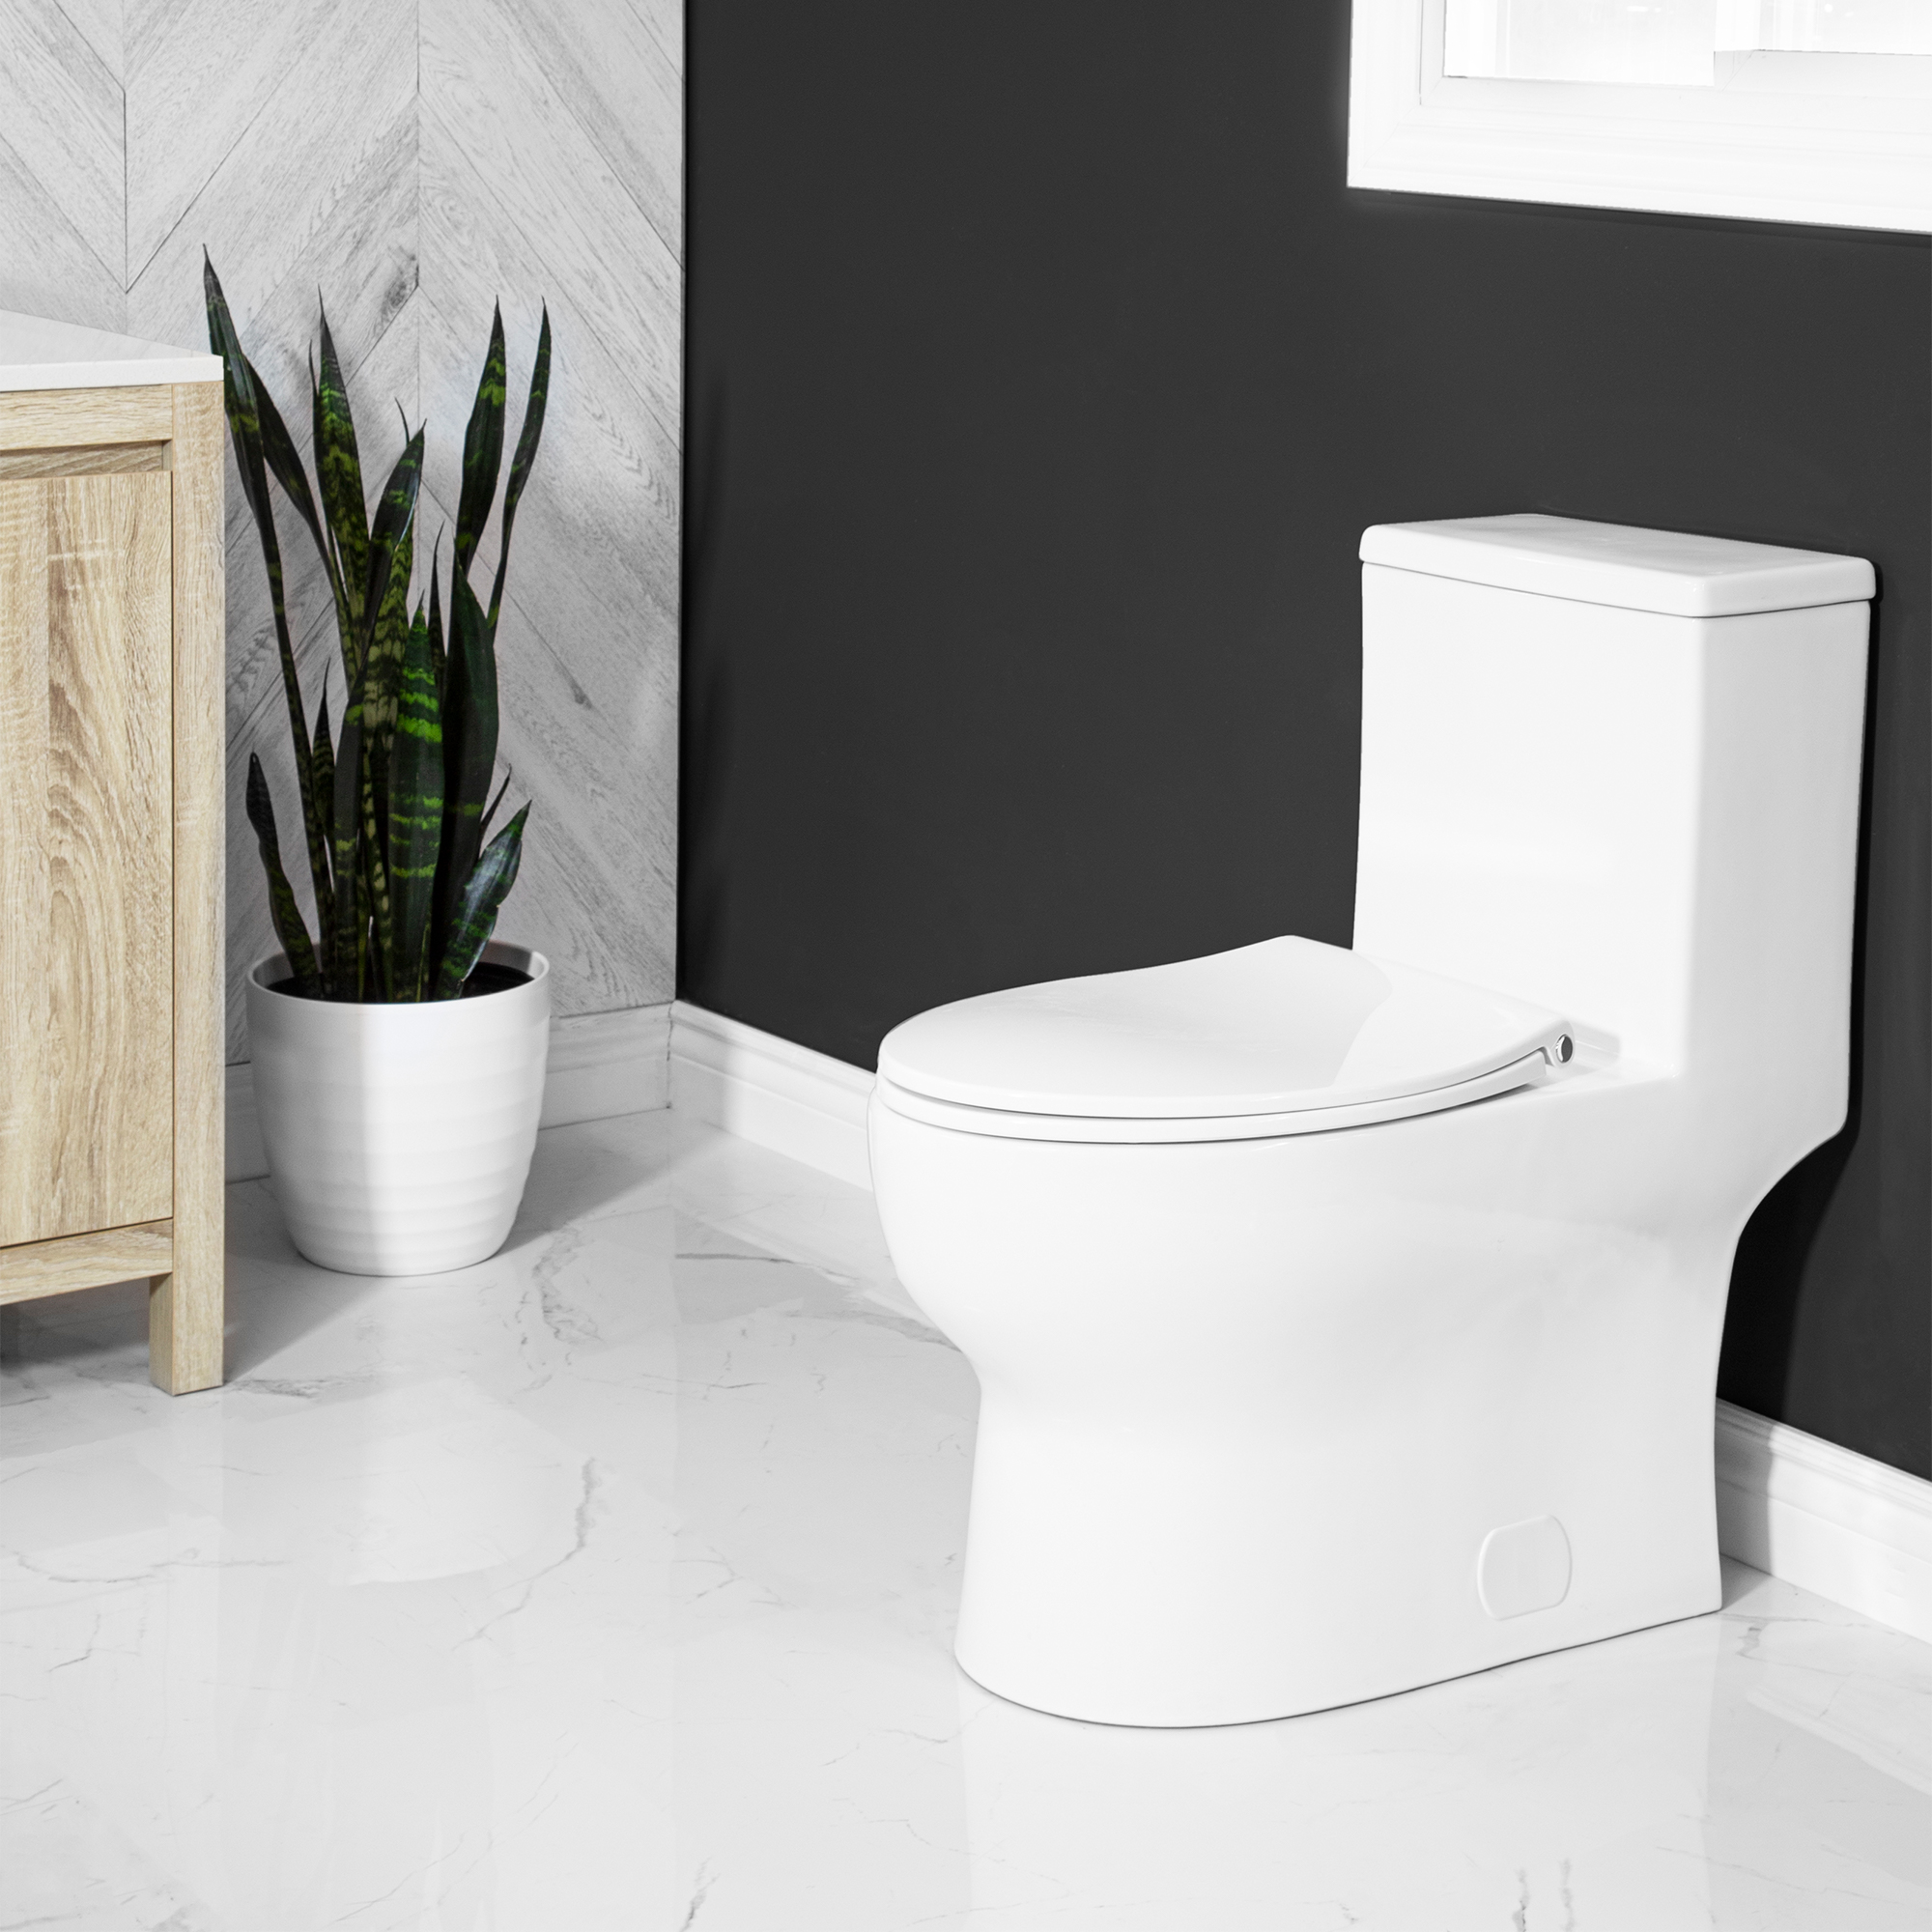 Eglinton One Piece Toilet Lined Tank Concealed Bowl